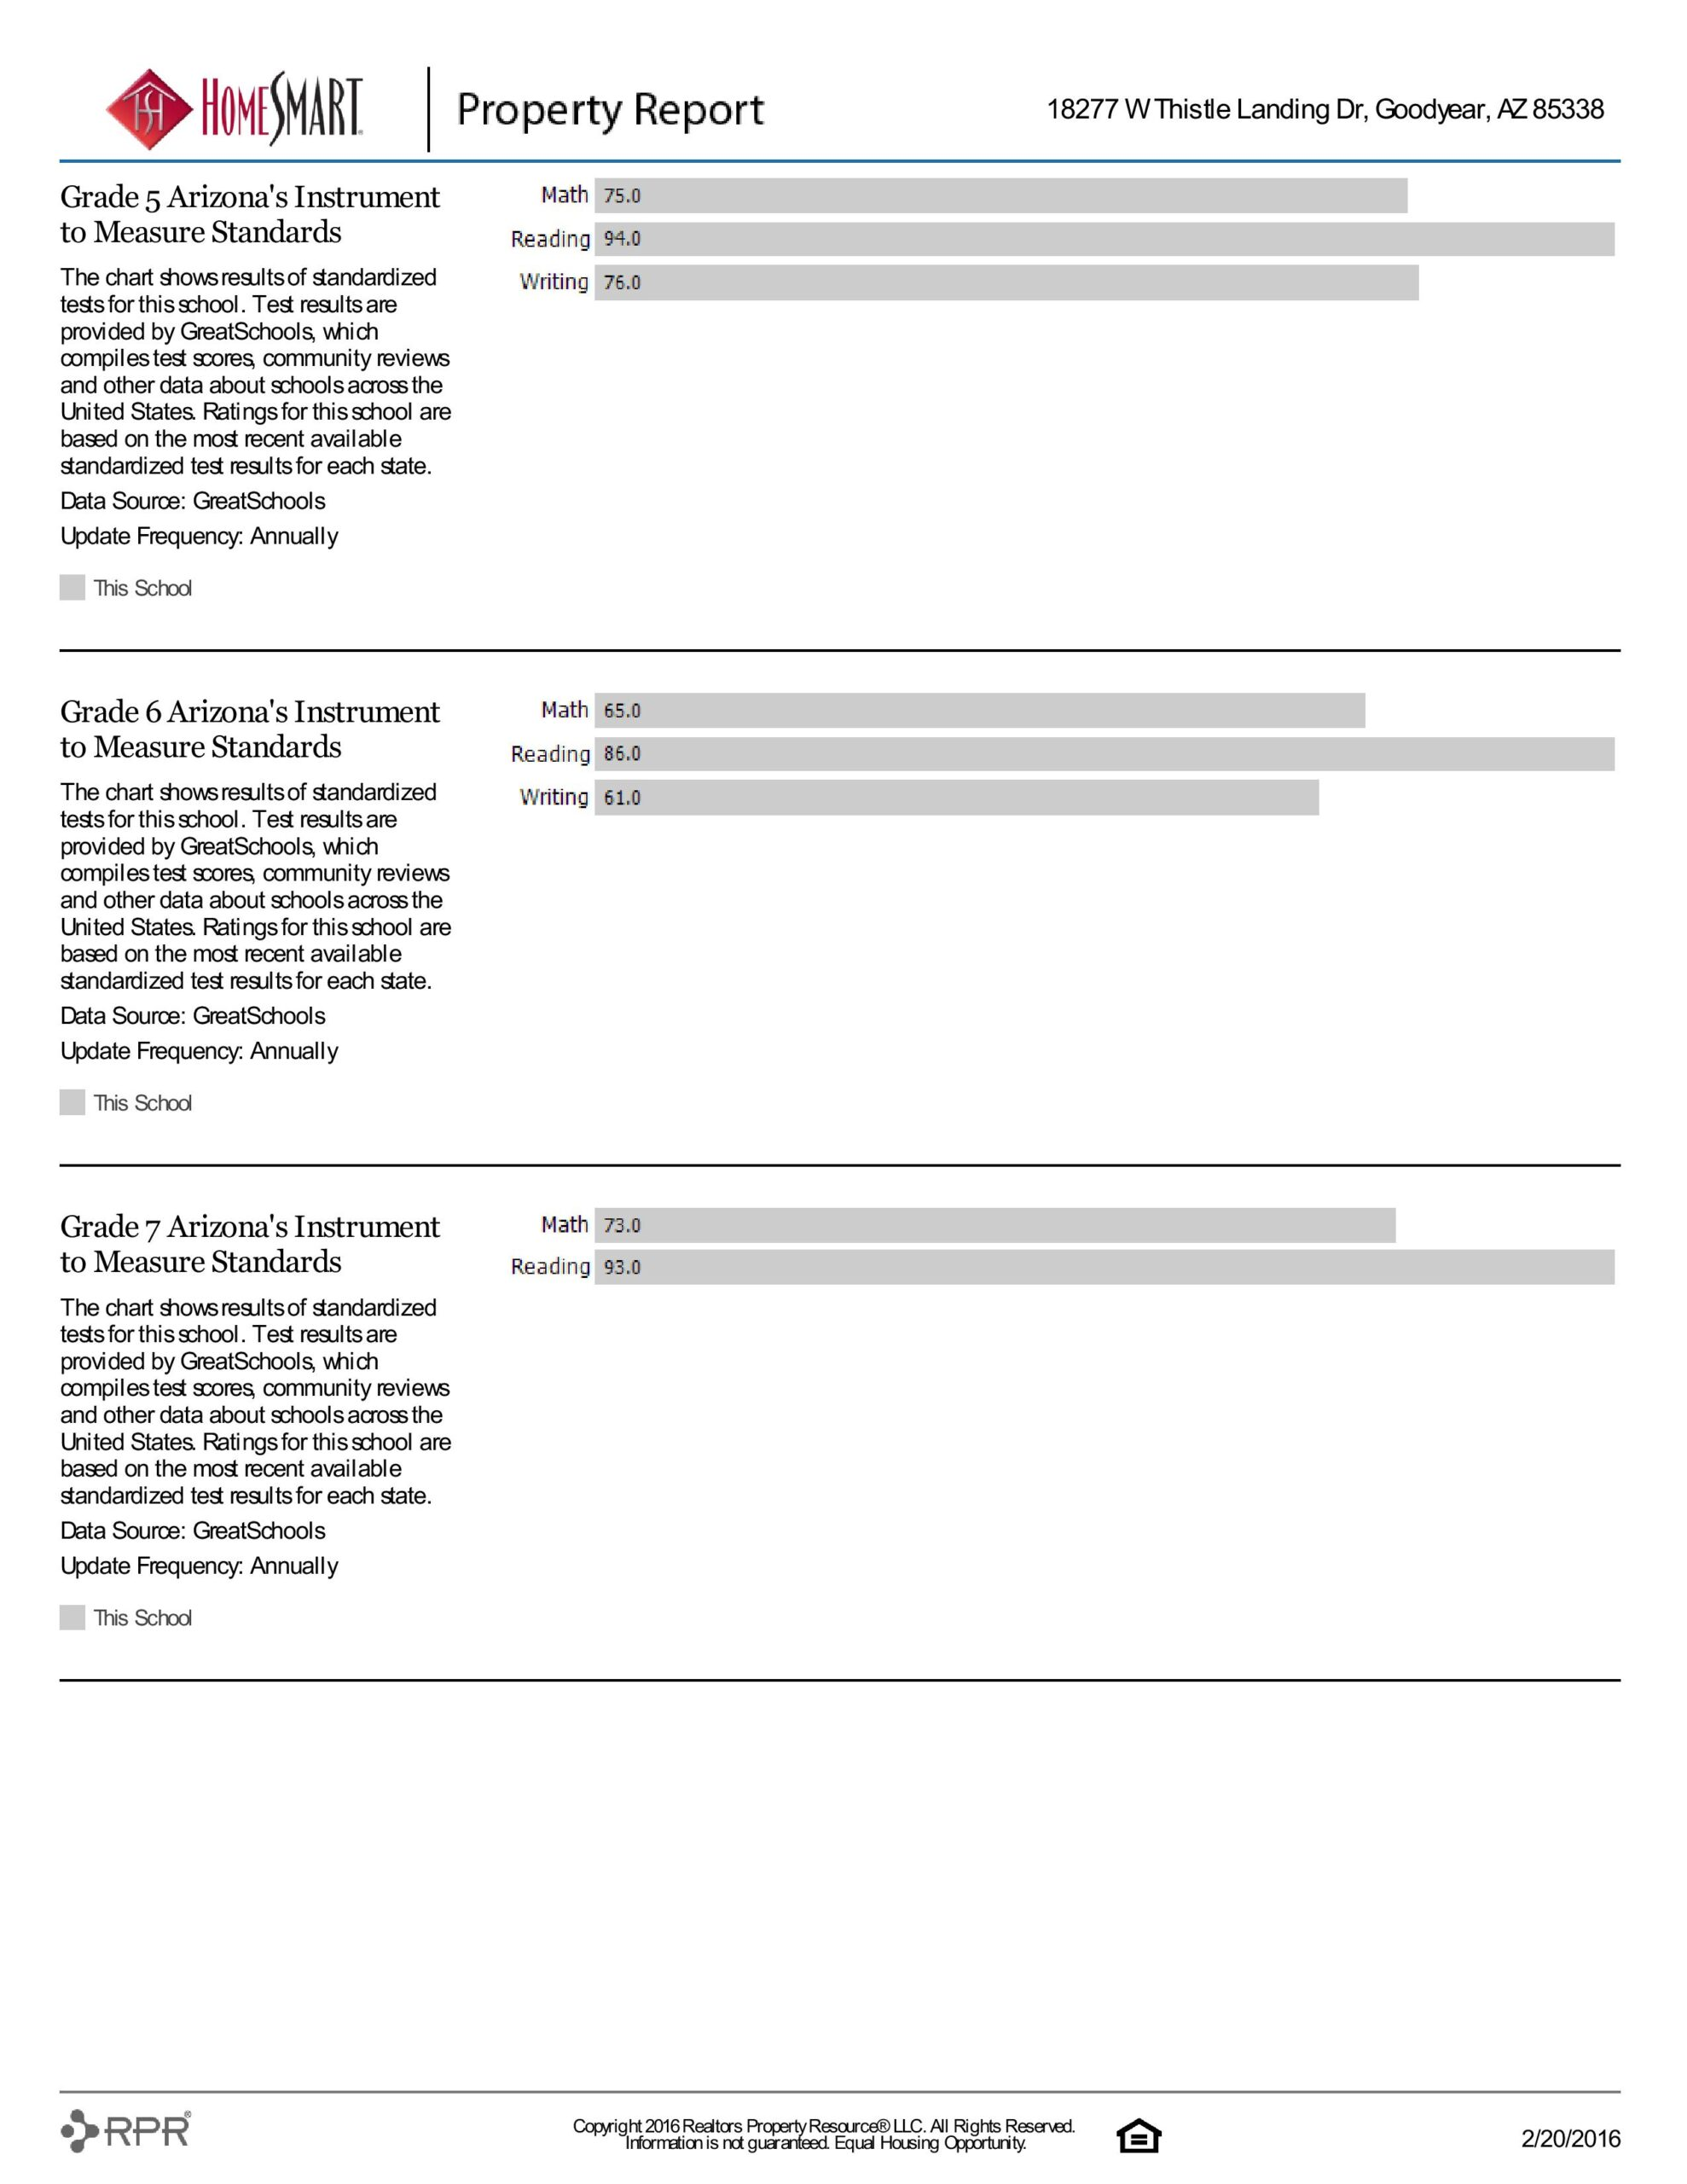 18277 W THISTLE LANDING DR PROPERTY REPORT-page-028